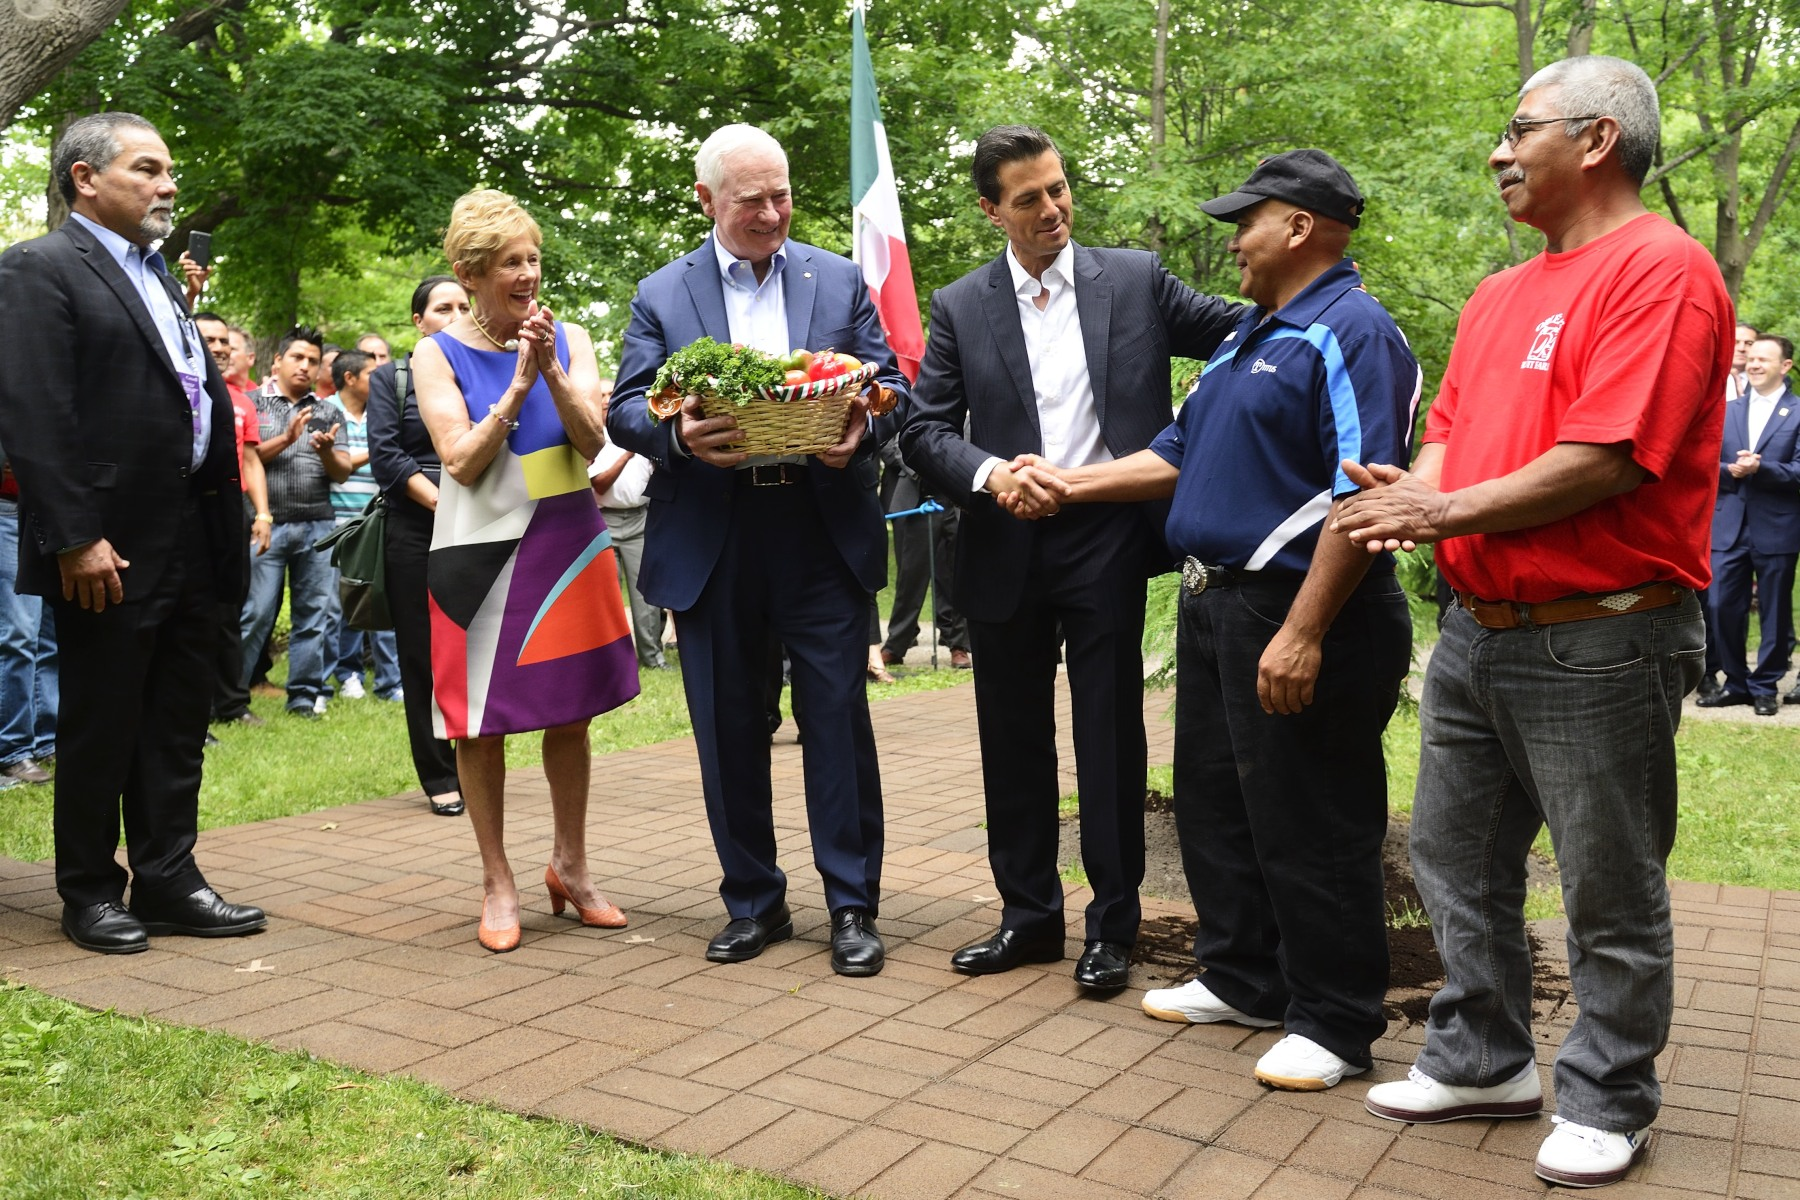 Following the planting ceremony, the President met with mexican seasonal workers currently working in Canada.